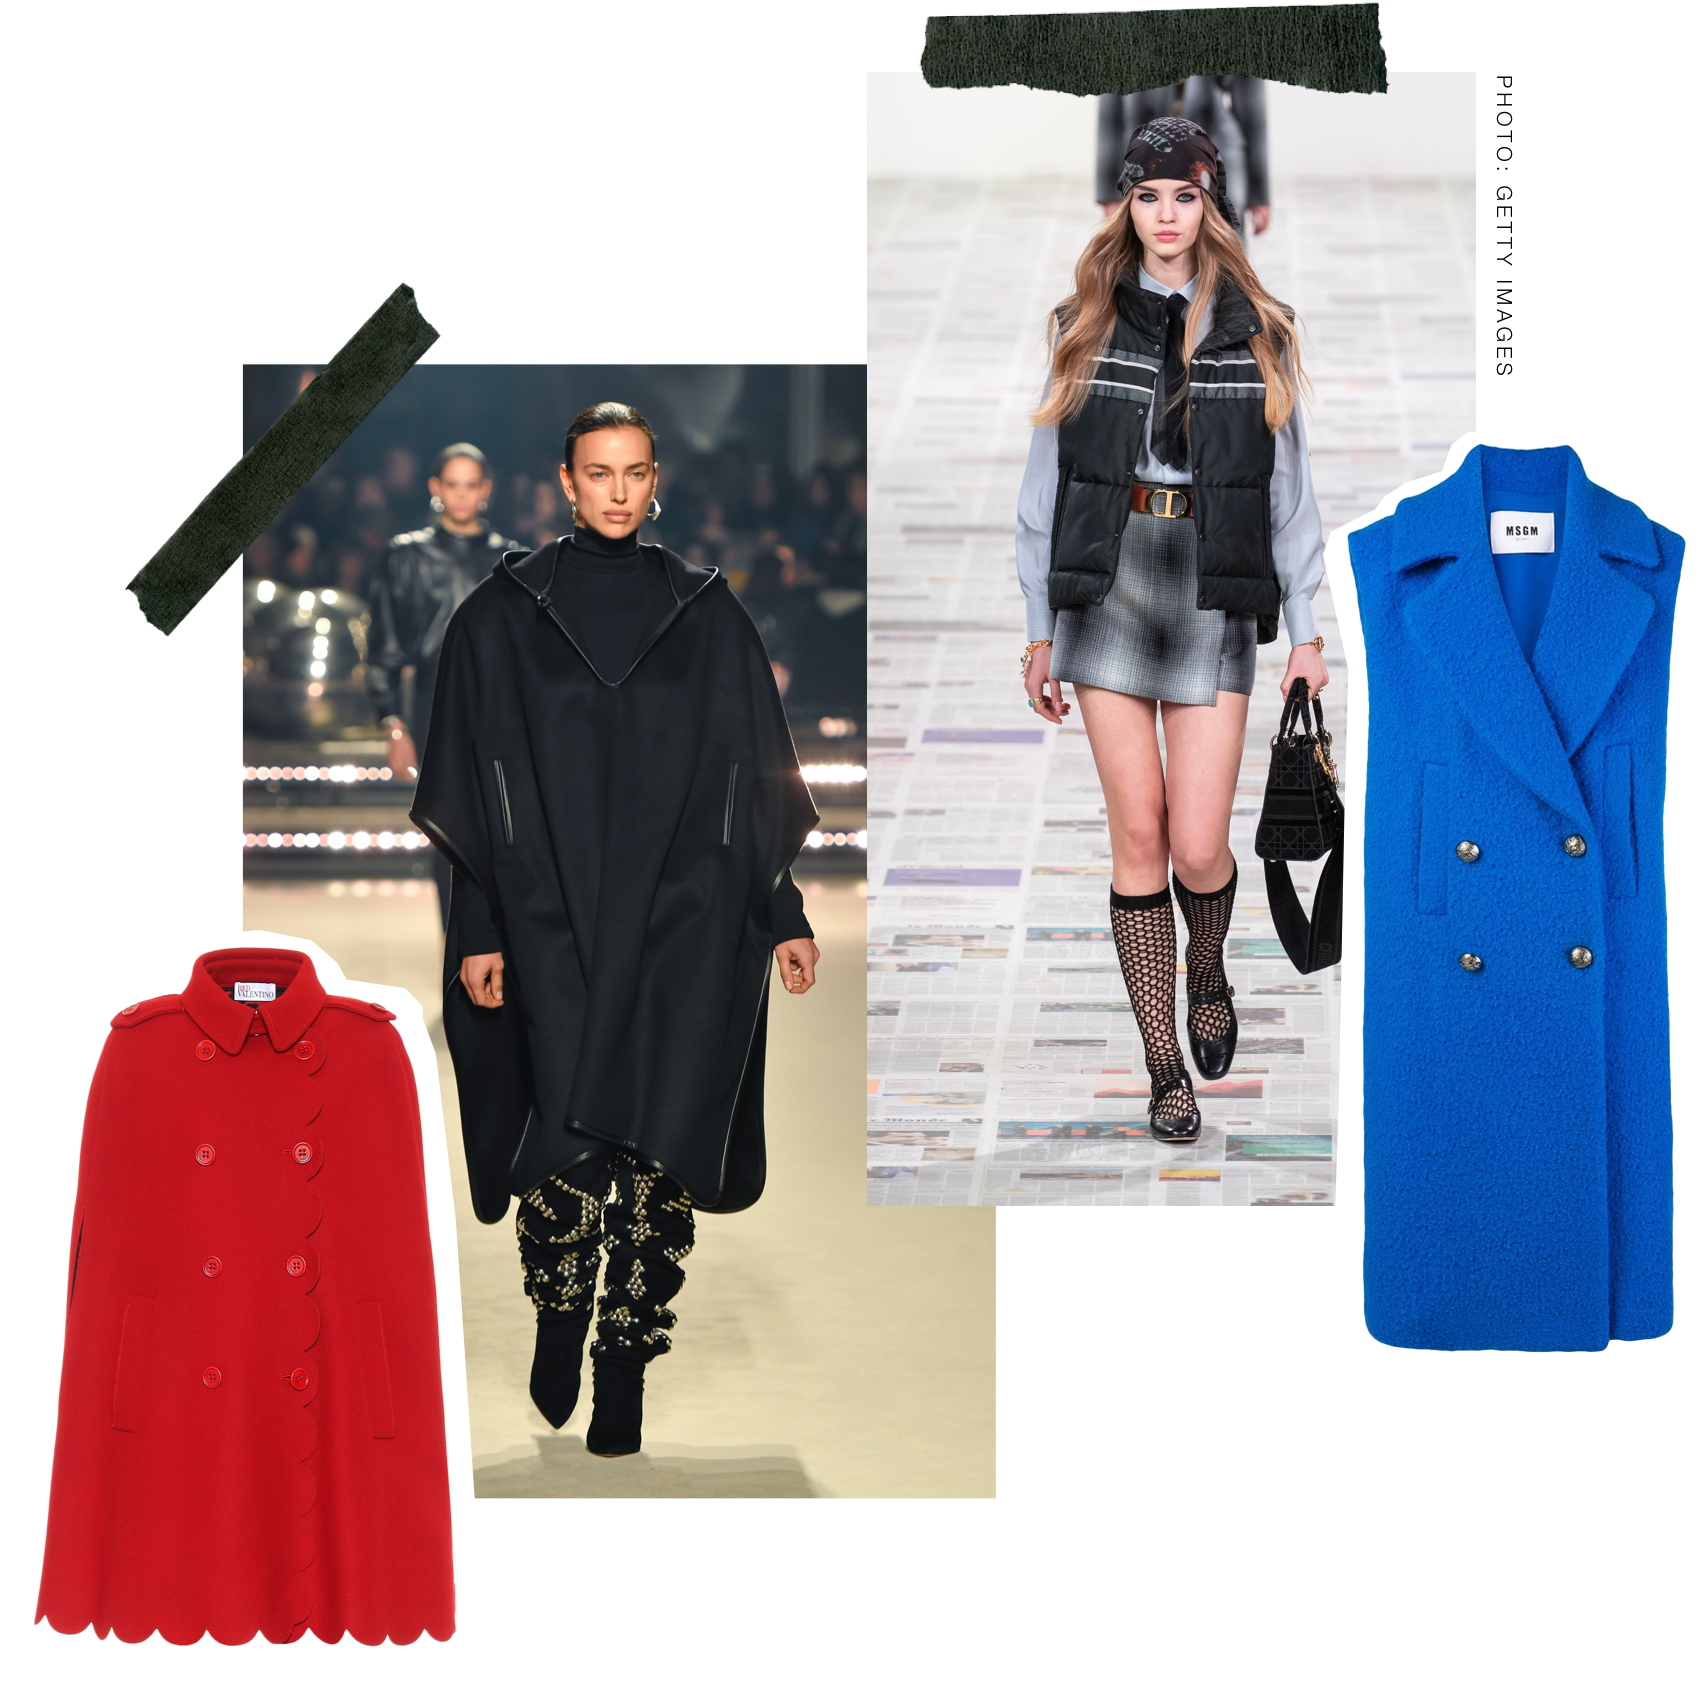 stylight-autumn-coats-and-jackets-2020-trend-Capes-Vests